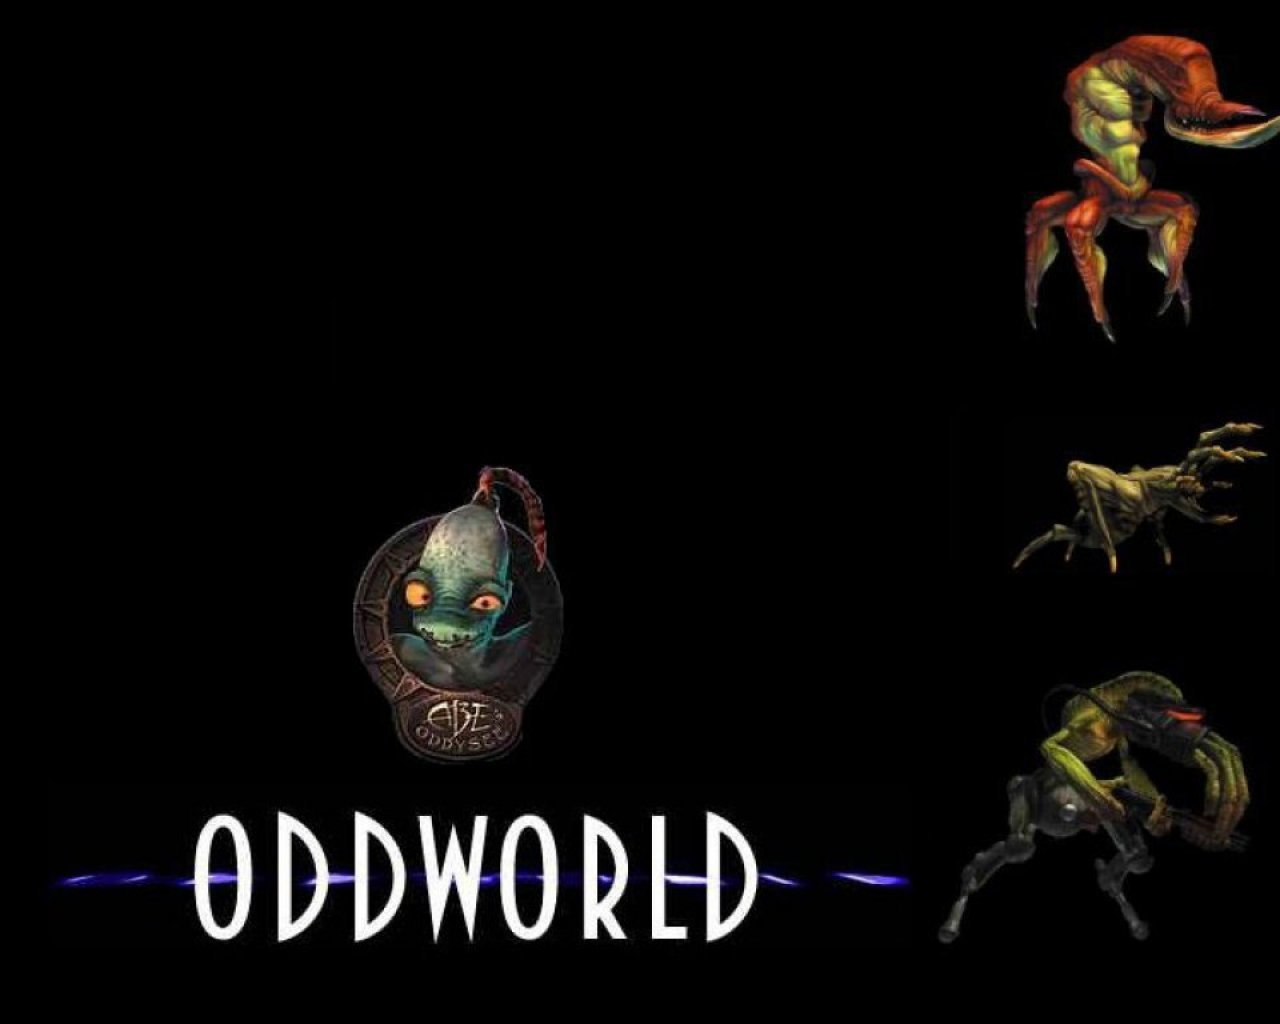 Games oddworld creatures game HD Wallpaper